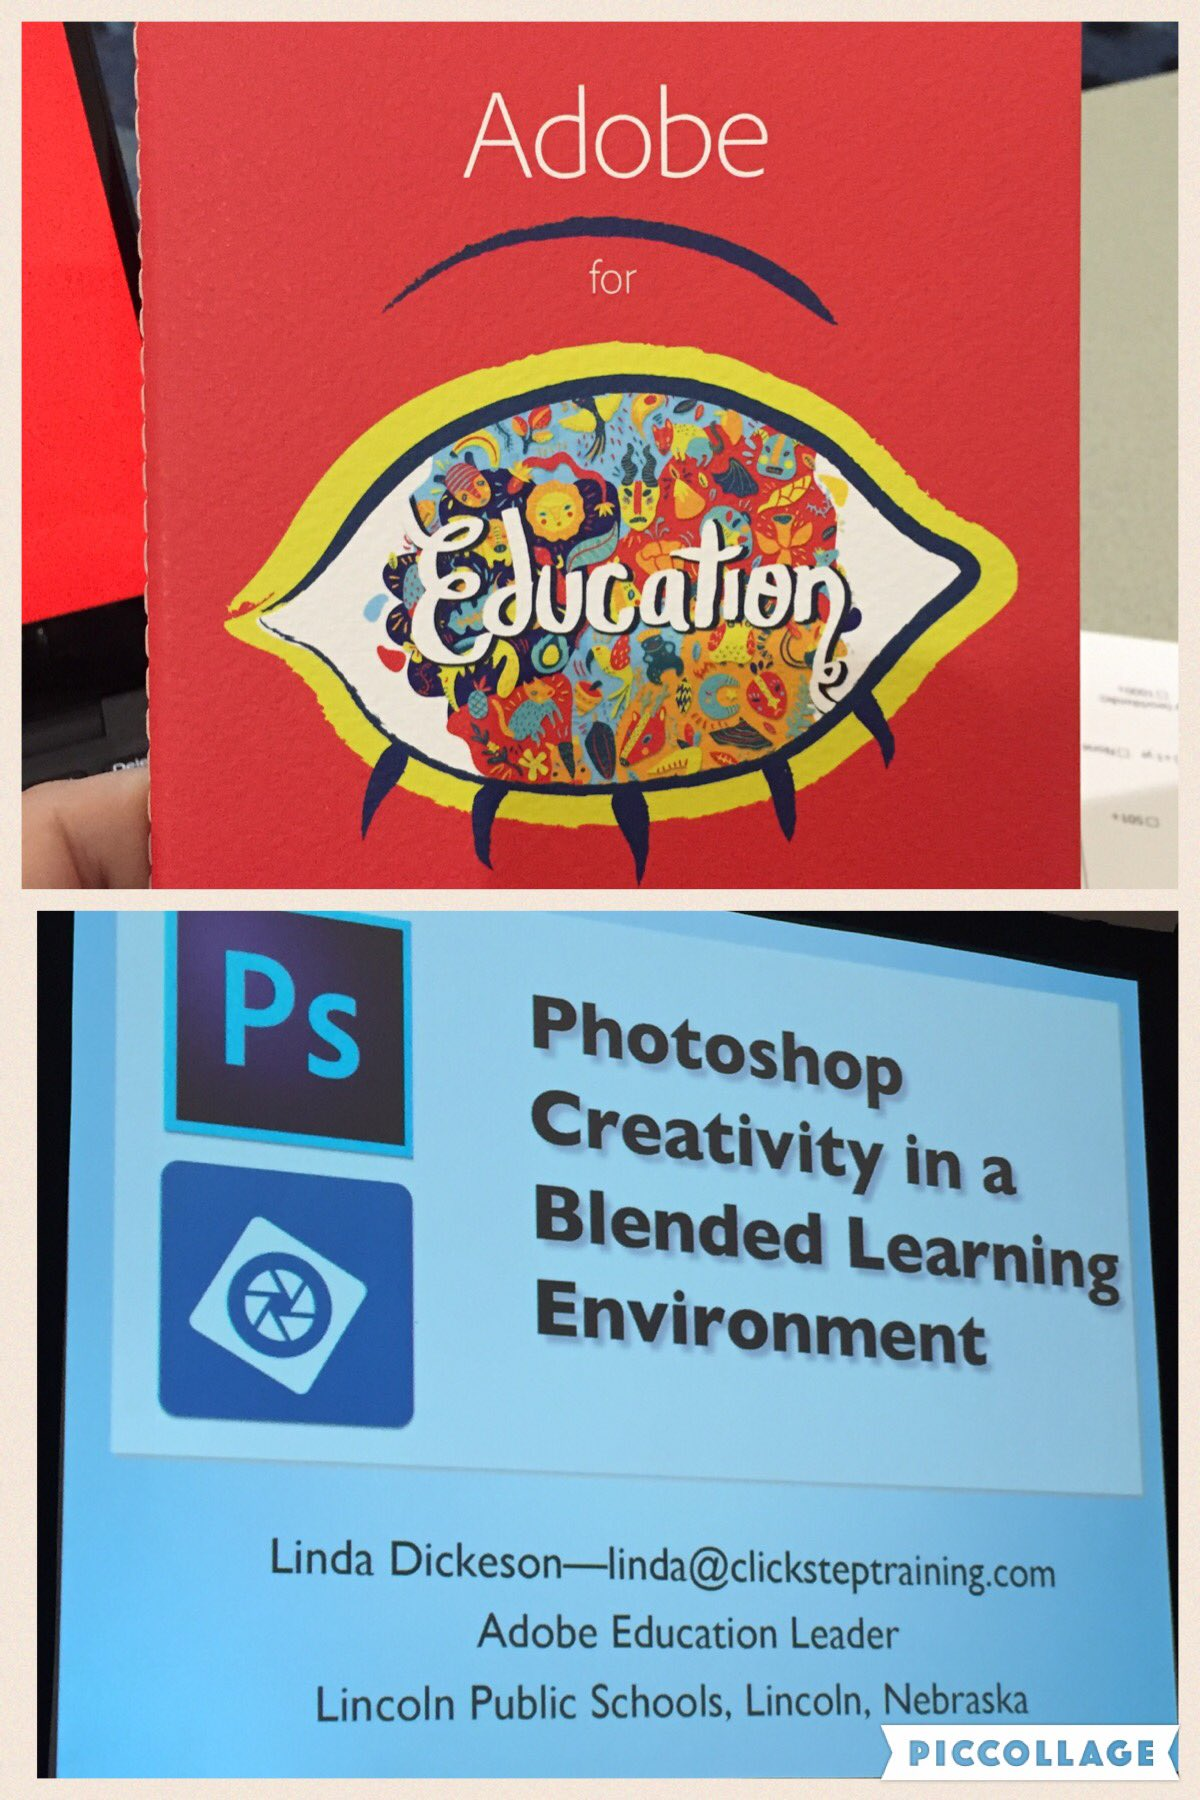 Super excited for my first #iste2016 workshop. @Photoshop #fcpsiste https://t.co/nDCY1rNitM